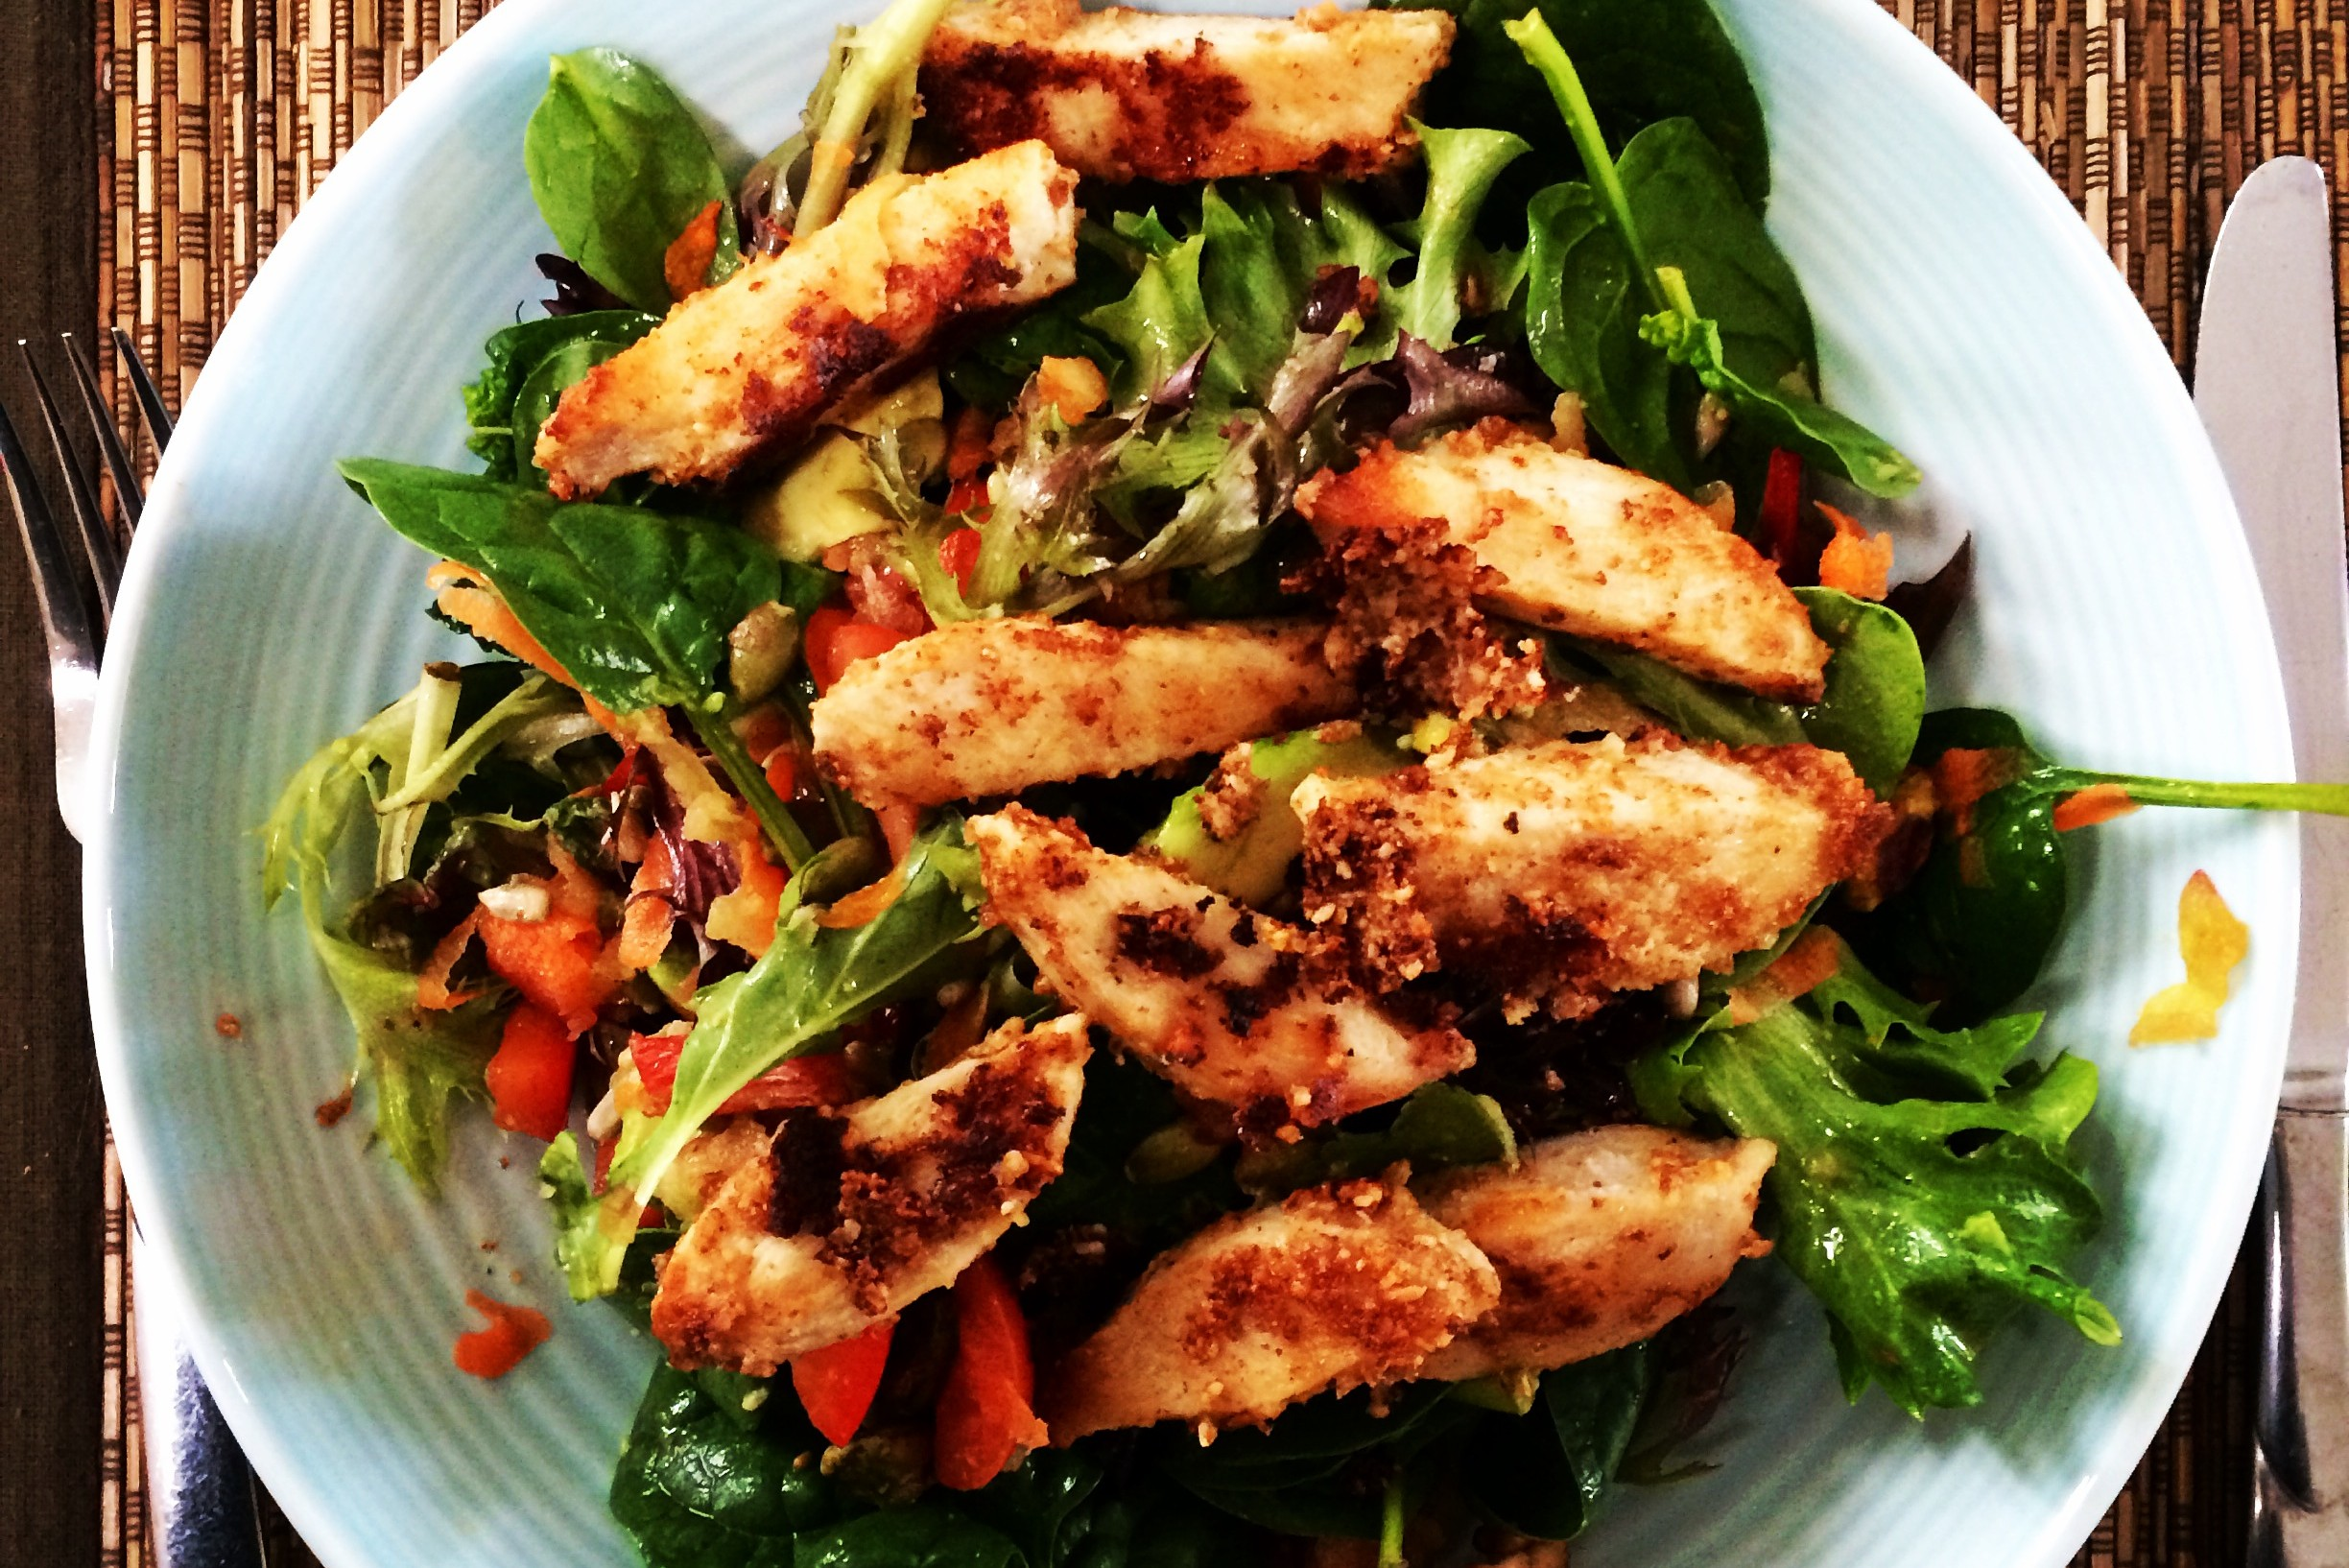 Chicken and Pistachio Salad